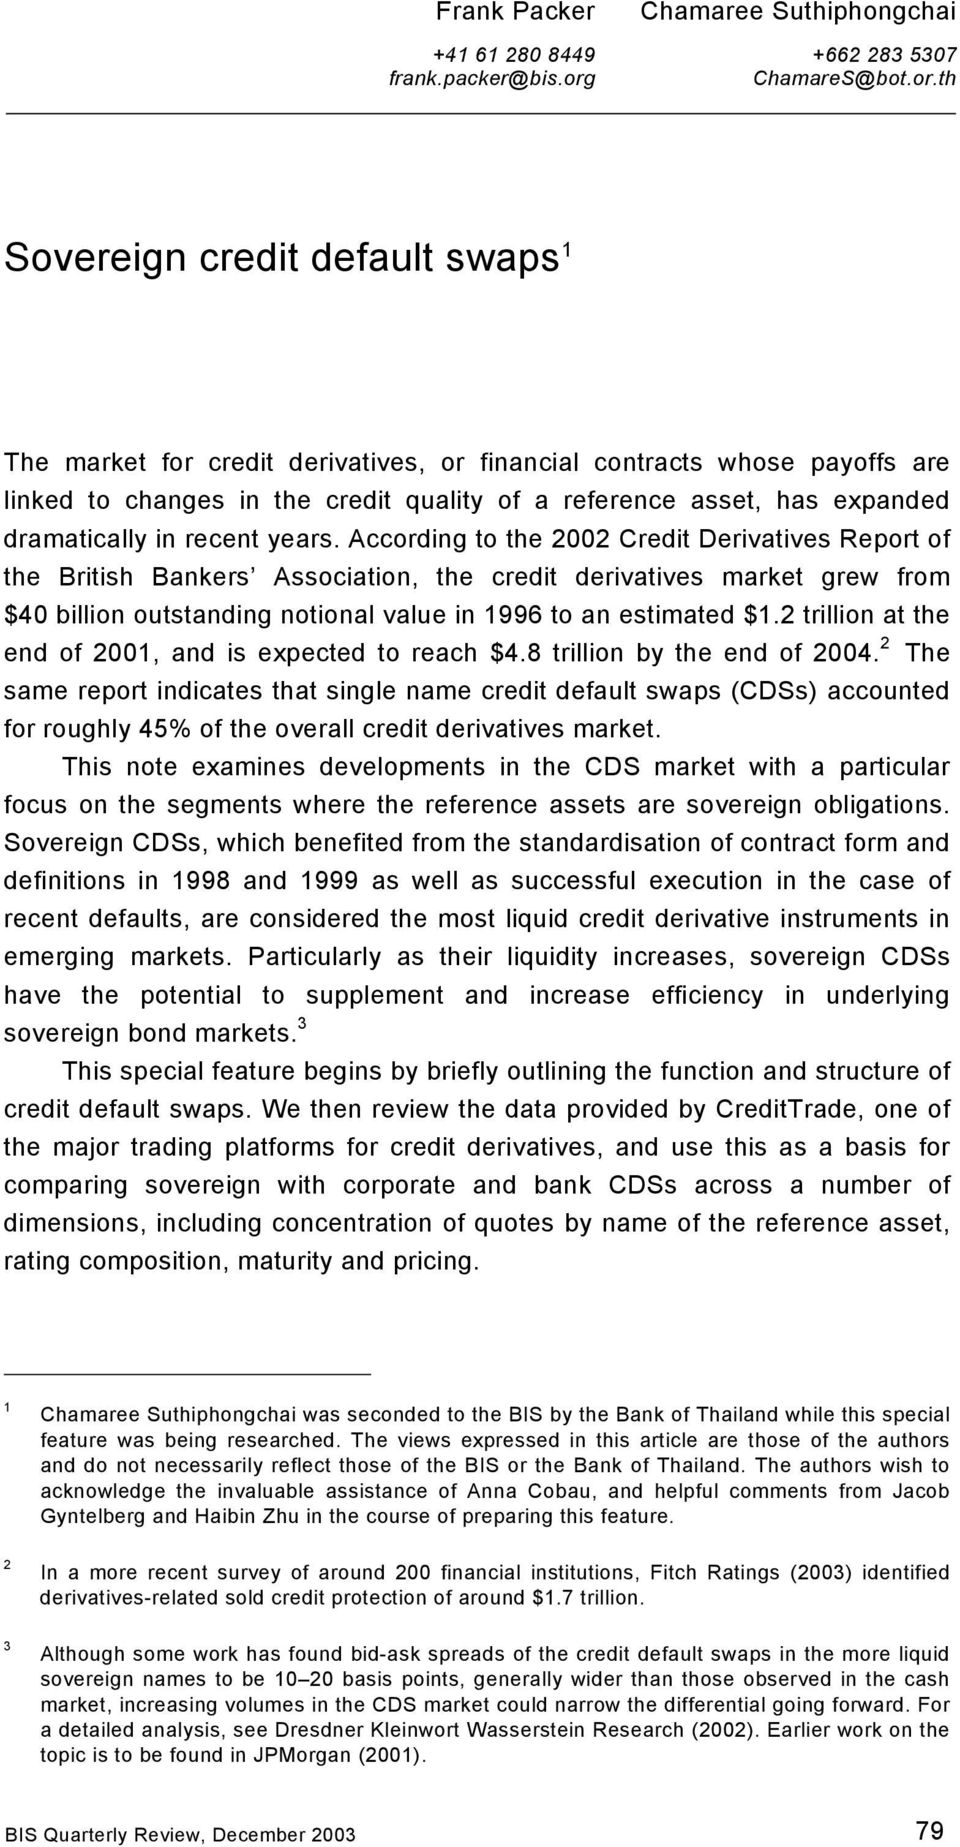 th Sovereign credit default swaps 1 The market for credit derivatives, or financial contracts whose payoffs are linked to changes in the credit quality of a reference asset, has expanded dramatically